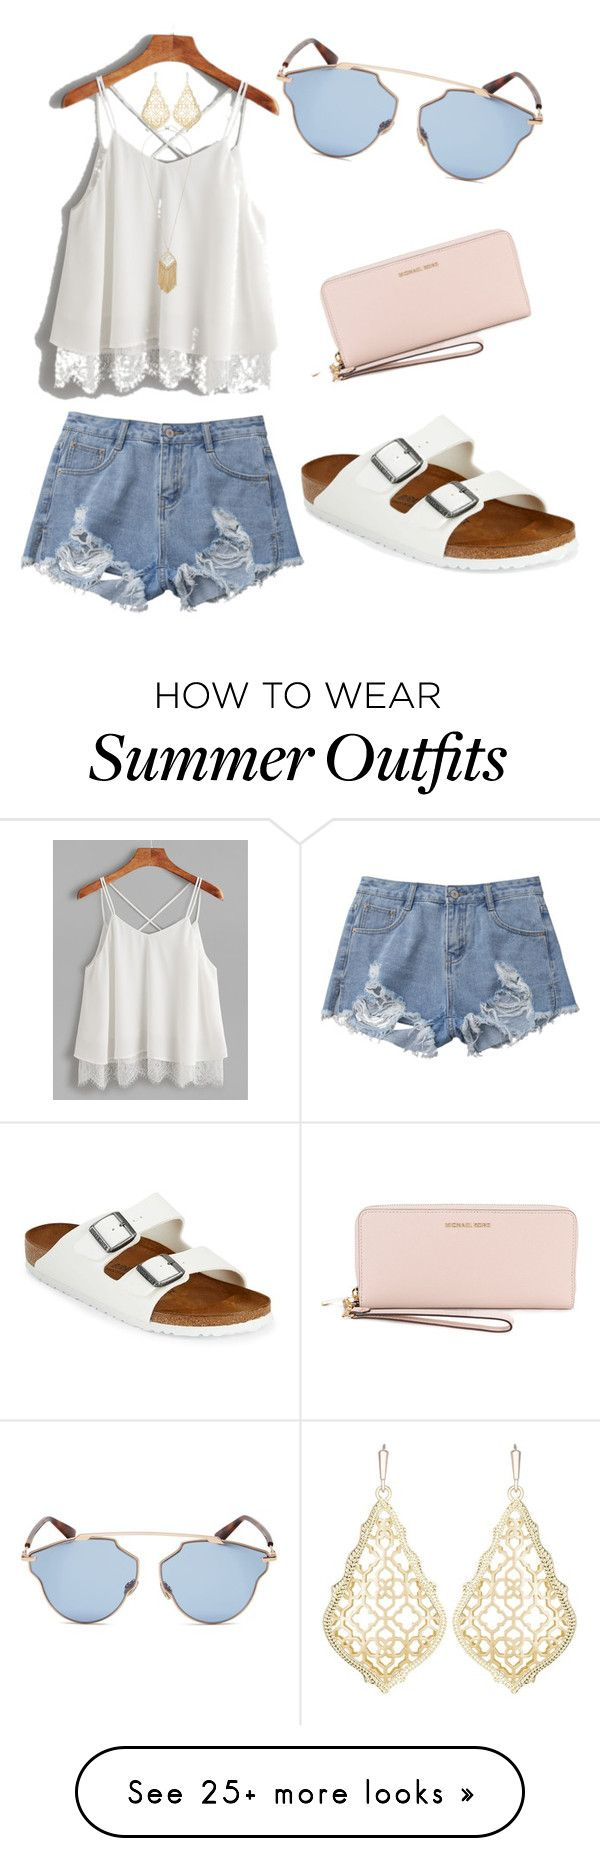 d9a23ec3062a Summer outfits summer outfit jaylee rain on polyvore featuring birkenstock  christian dio jpg 600x1858 Polyvore birkenstock